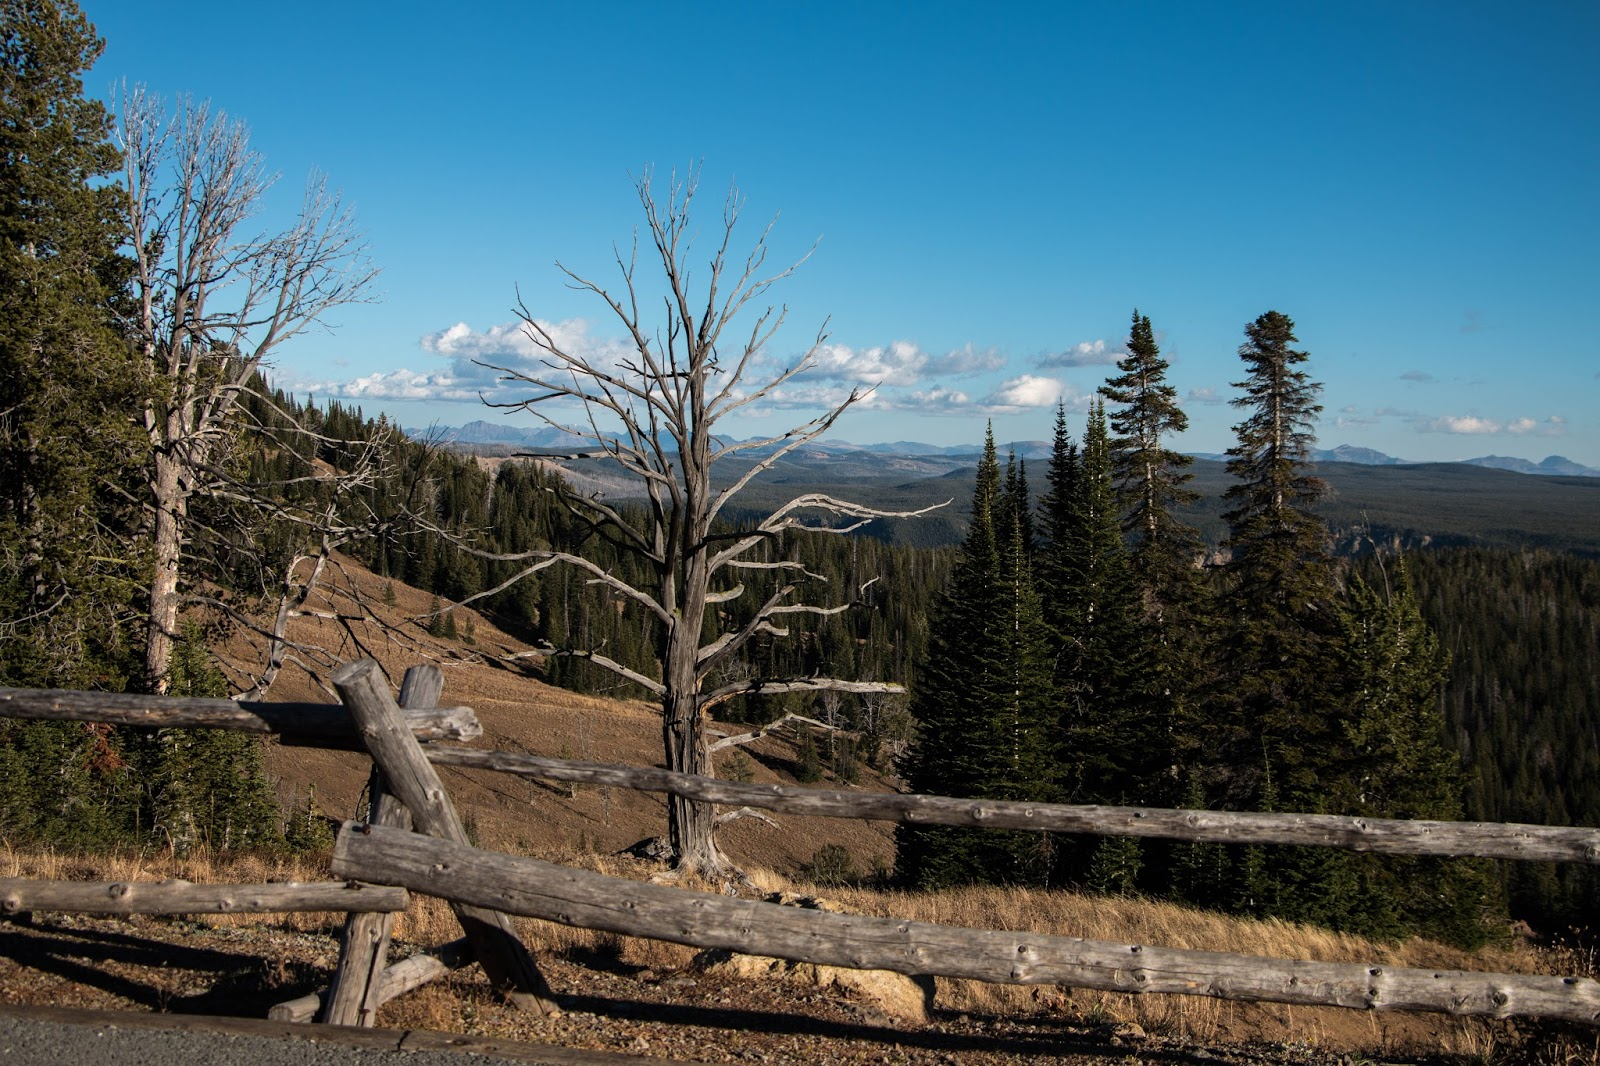 yellowstone national park essay The reintroduction program is a cooperative effort with the national park service and usda forest service late last century, we realized that something was wrong with the ecosystem in yellowstone national park.